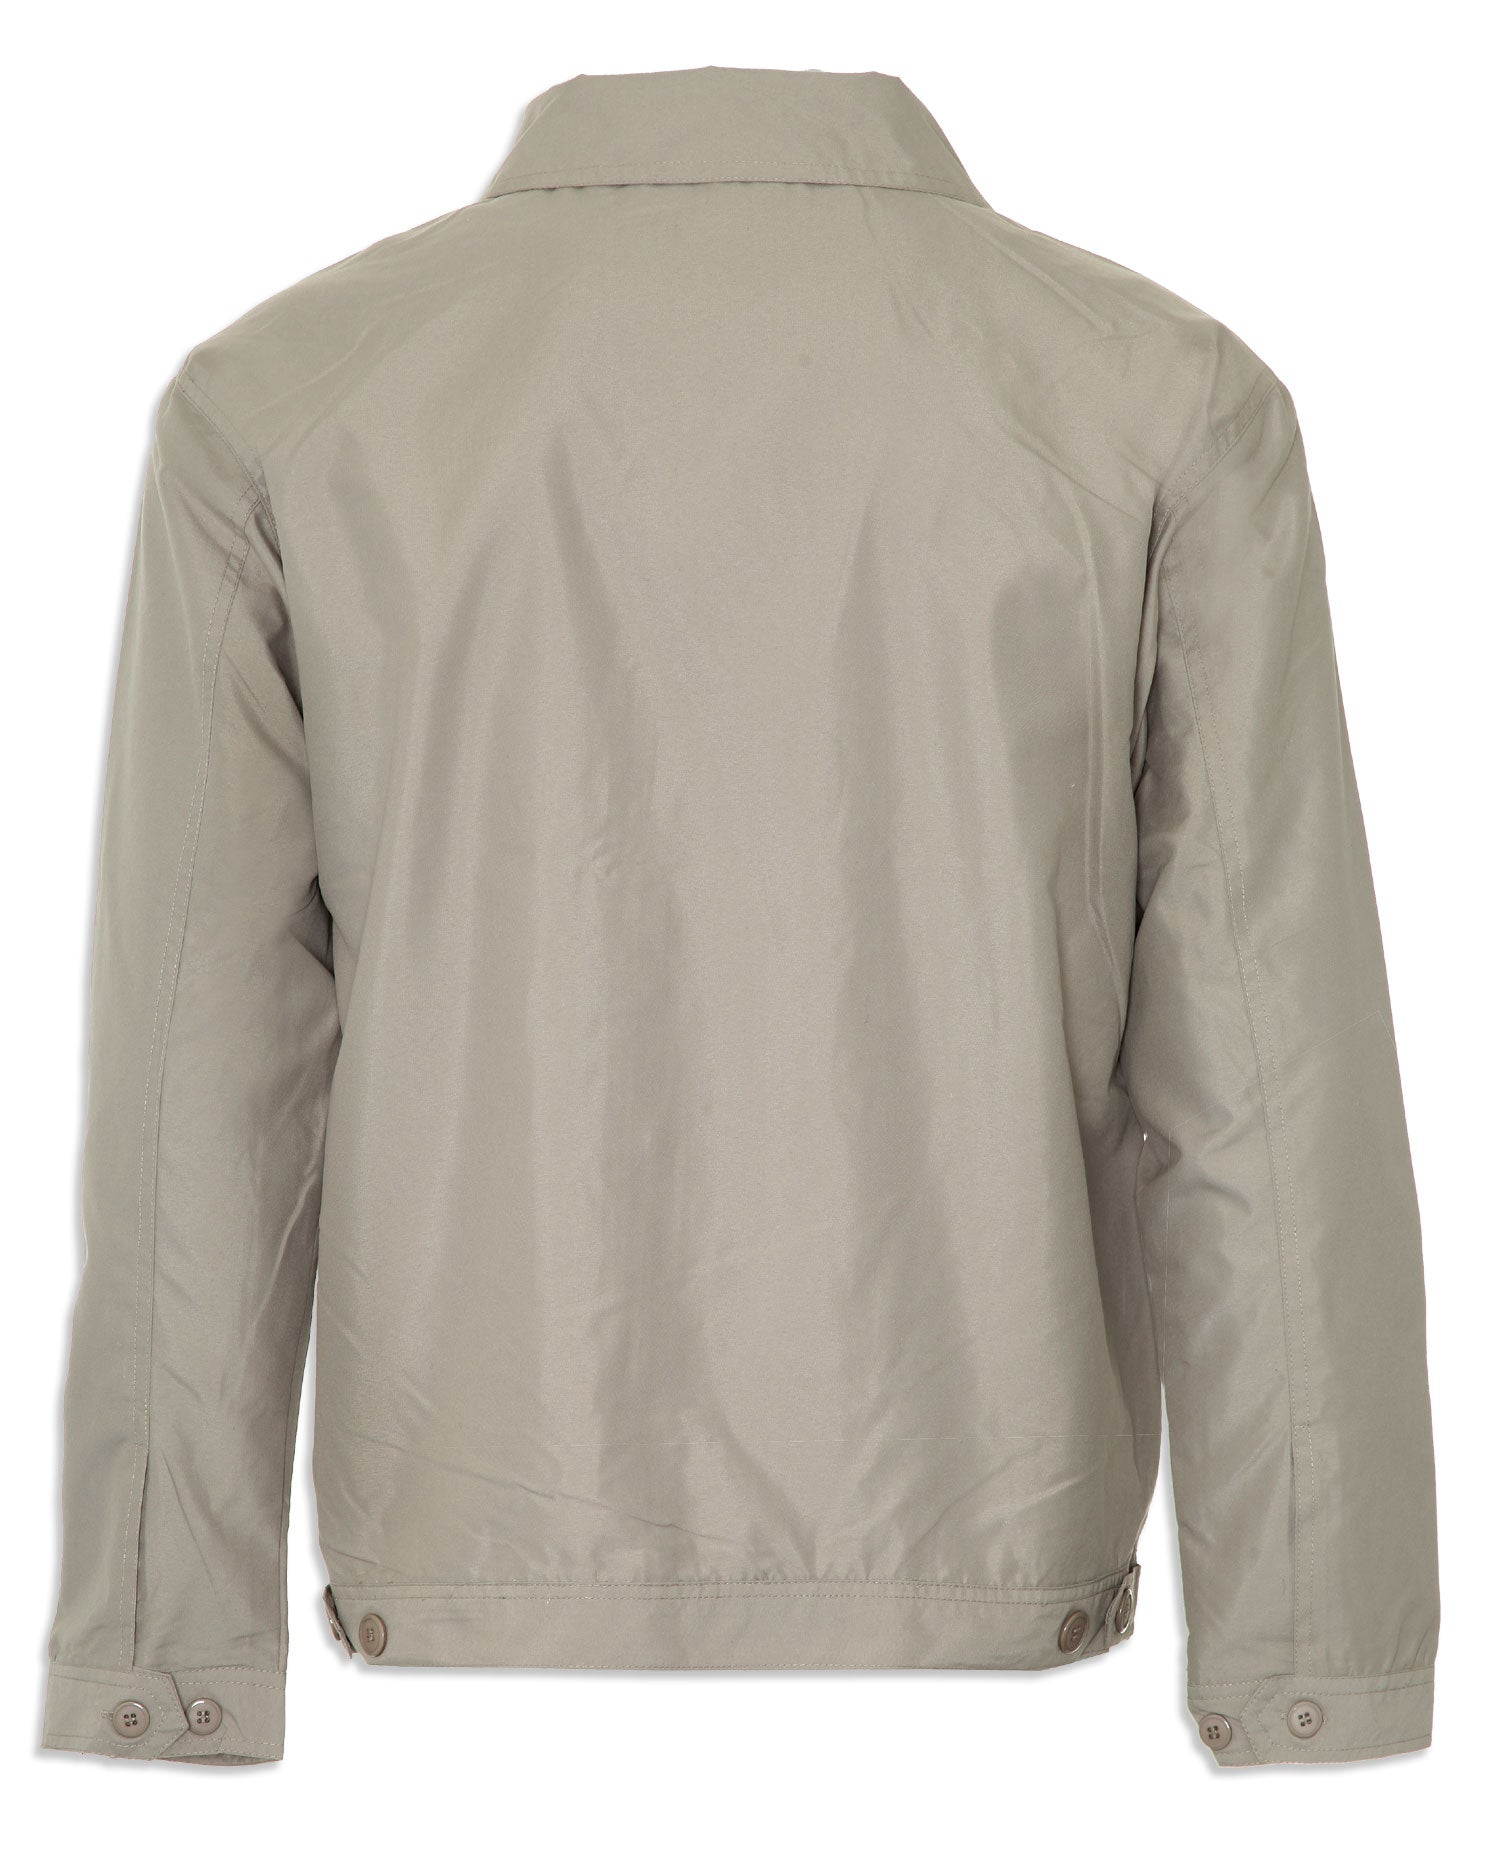 back view Birkdale jacket in stone colour